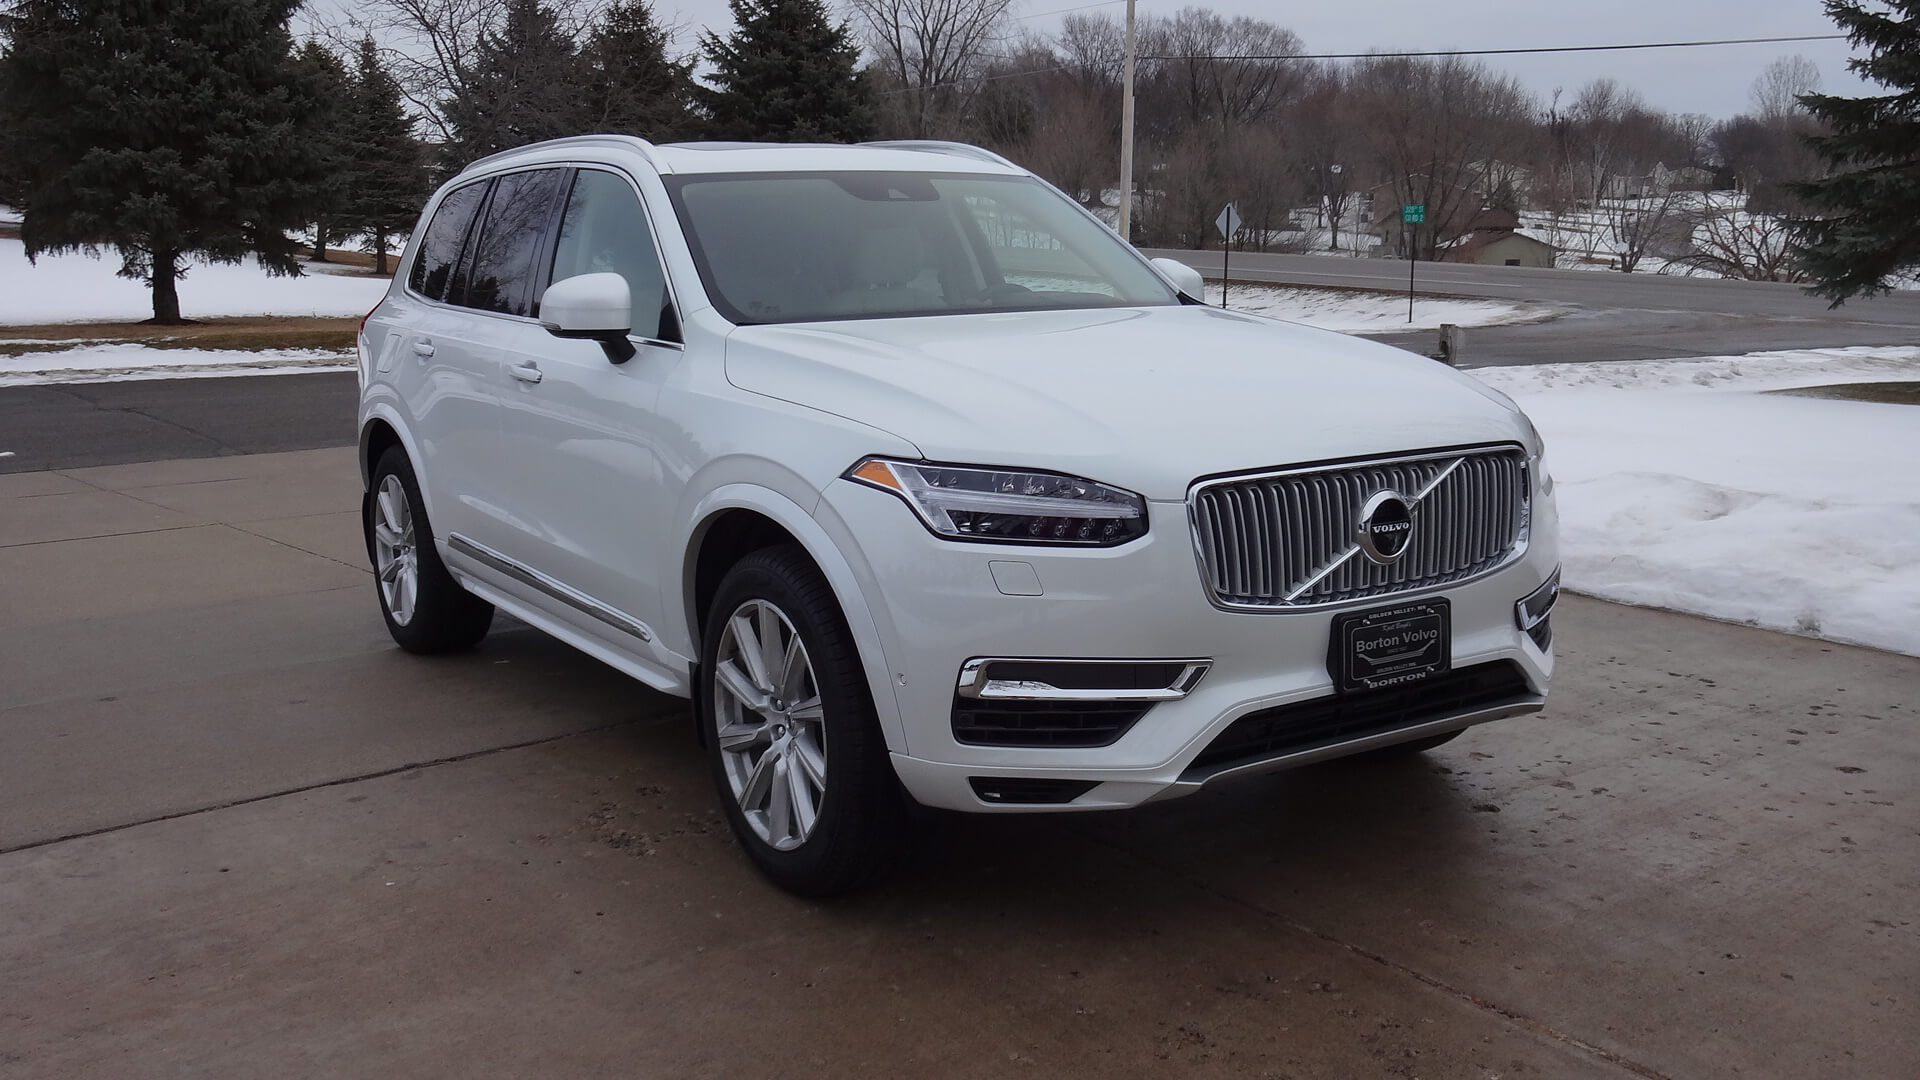 https://epunjaci.hr/wp-content/uploads/2018/10/2016-volvo-xc90-t8-plug-in-hybrid.jpg